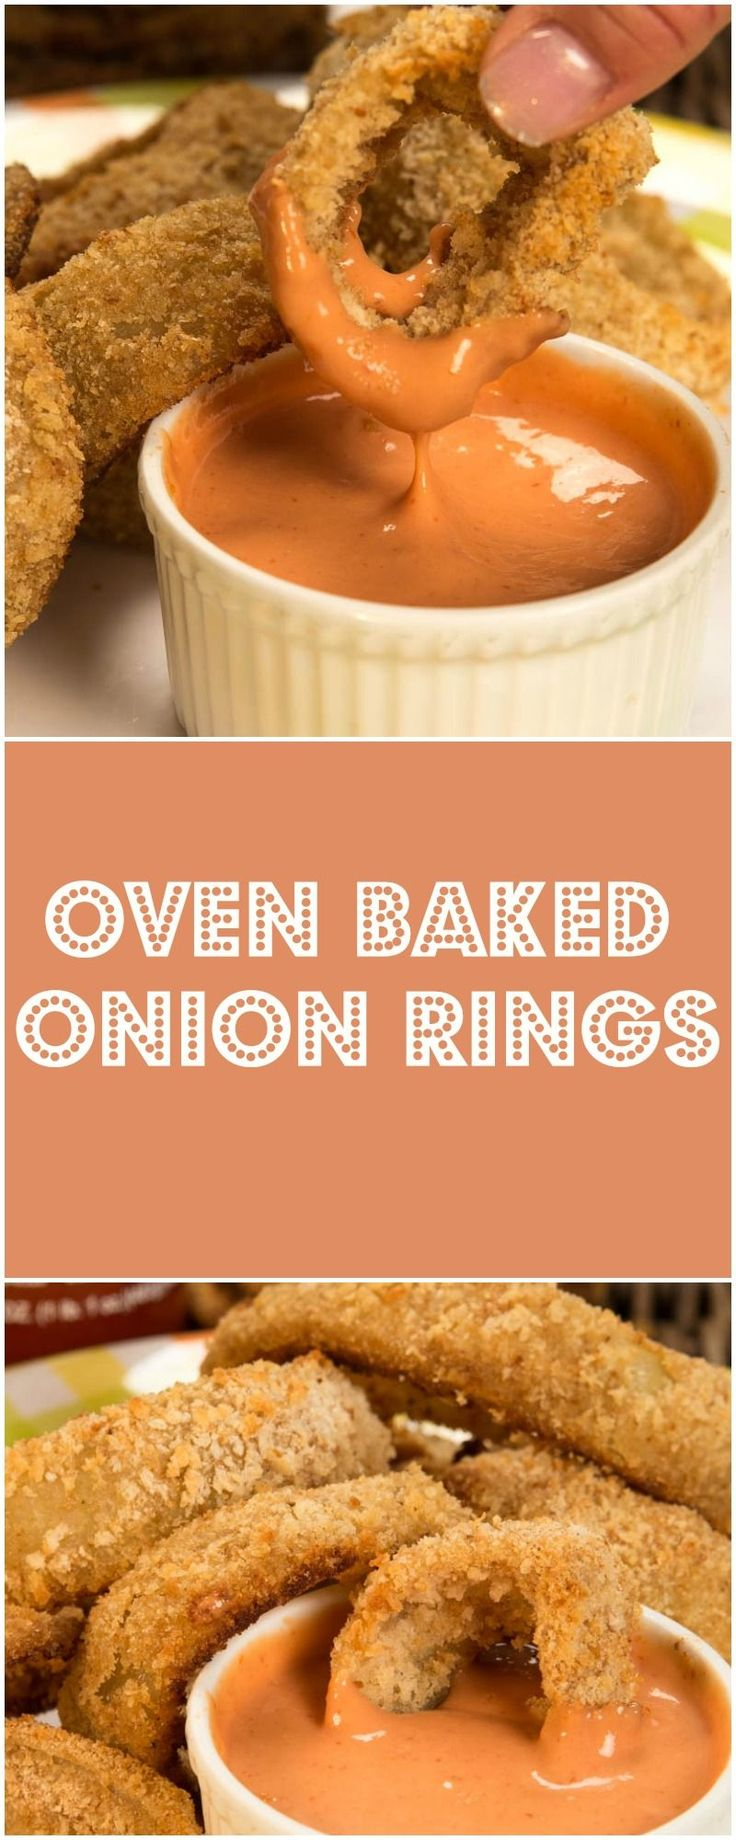 There is just something about the smell of Onion Rings that immediately makes your mouth water. I have to say these Oven Baked Onion Rings did just that. Oven Baked Onion Rings are so simple to make, they can be done in 3 easy steps, shake, dunk, and dip.